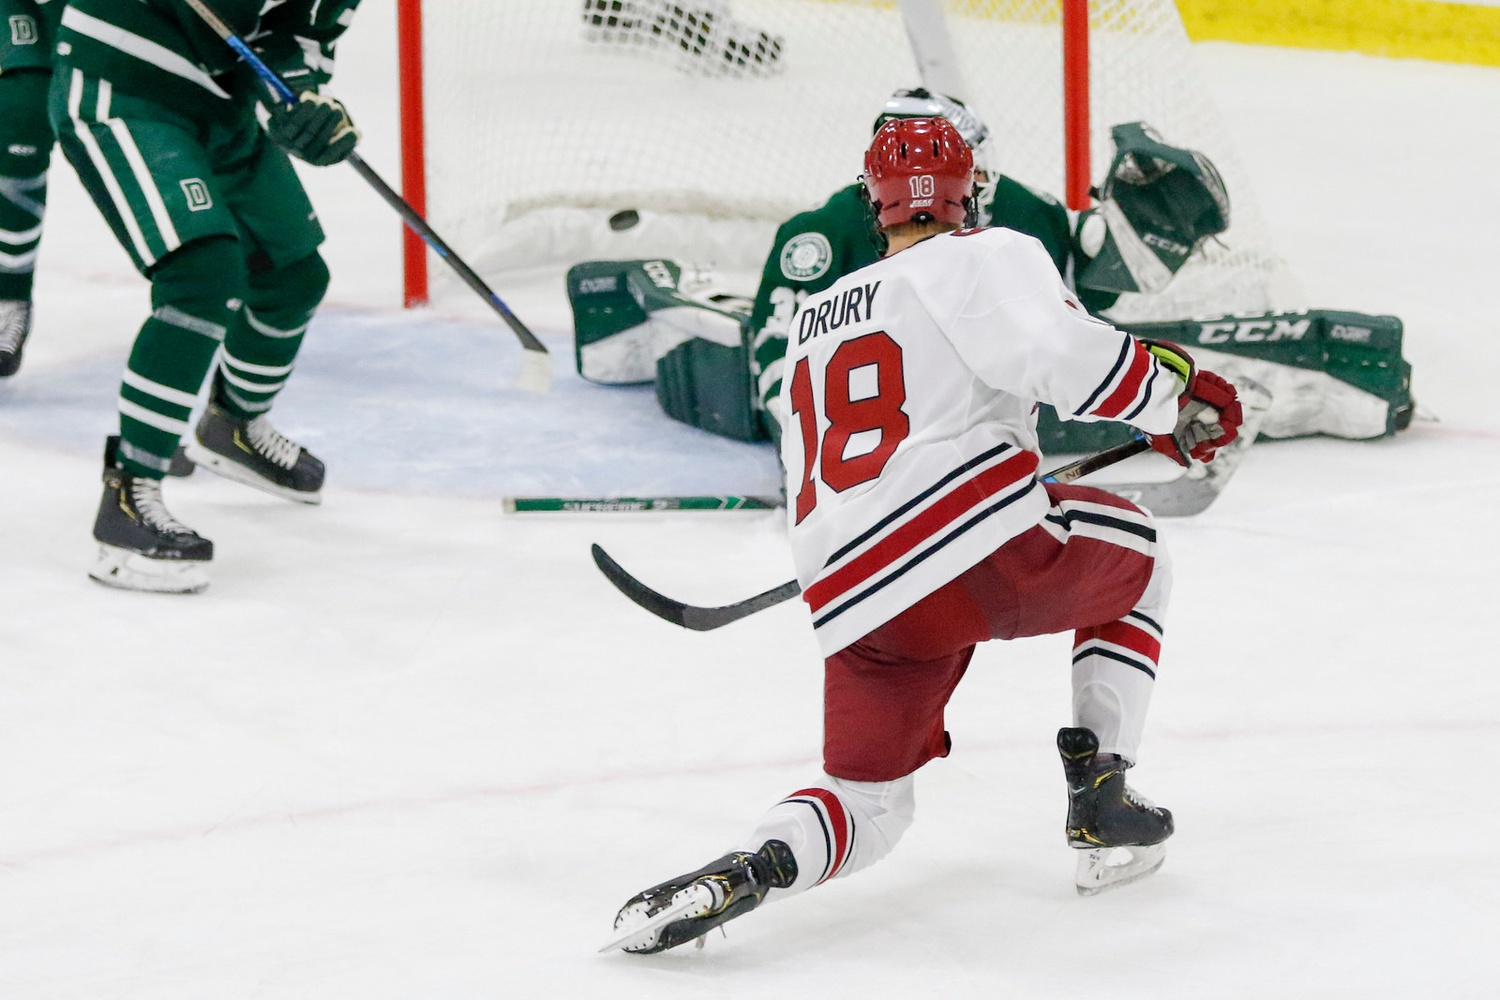 Sophomore forward Jack Drury emerged as one of college hockey's young stars in 2019-2020.